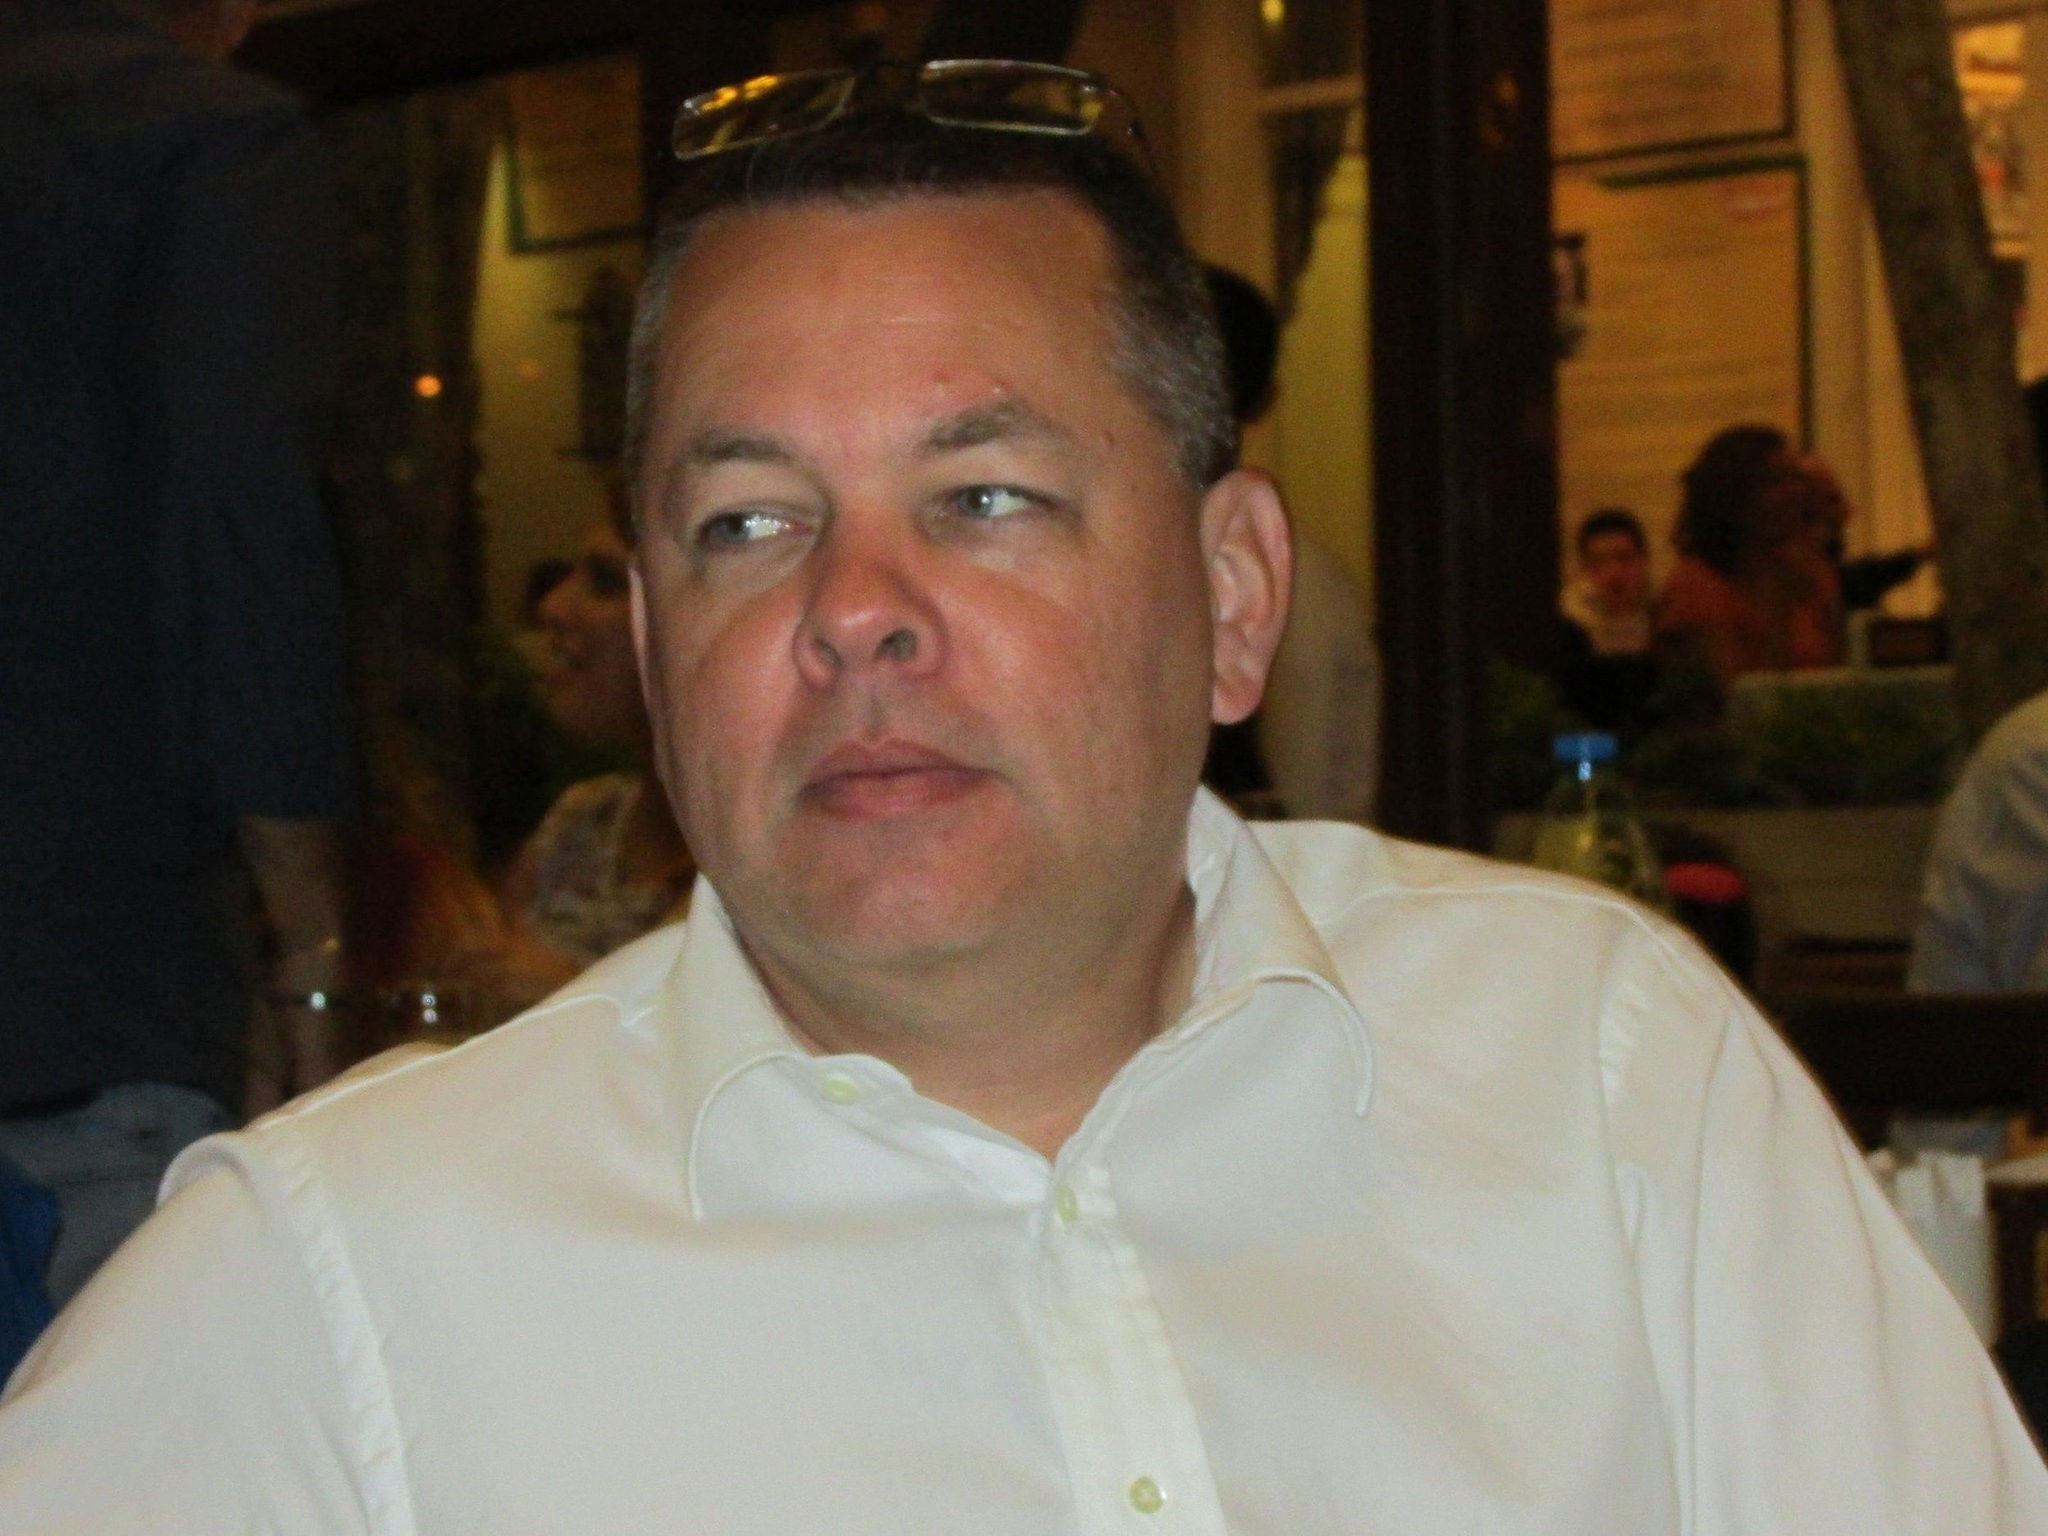 American pastor Andrew Craig Brunson faces charges of espionage and aiding the PKK and FETu00d6 terrorist groups.